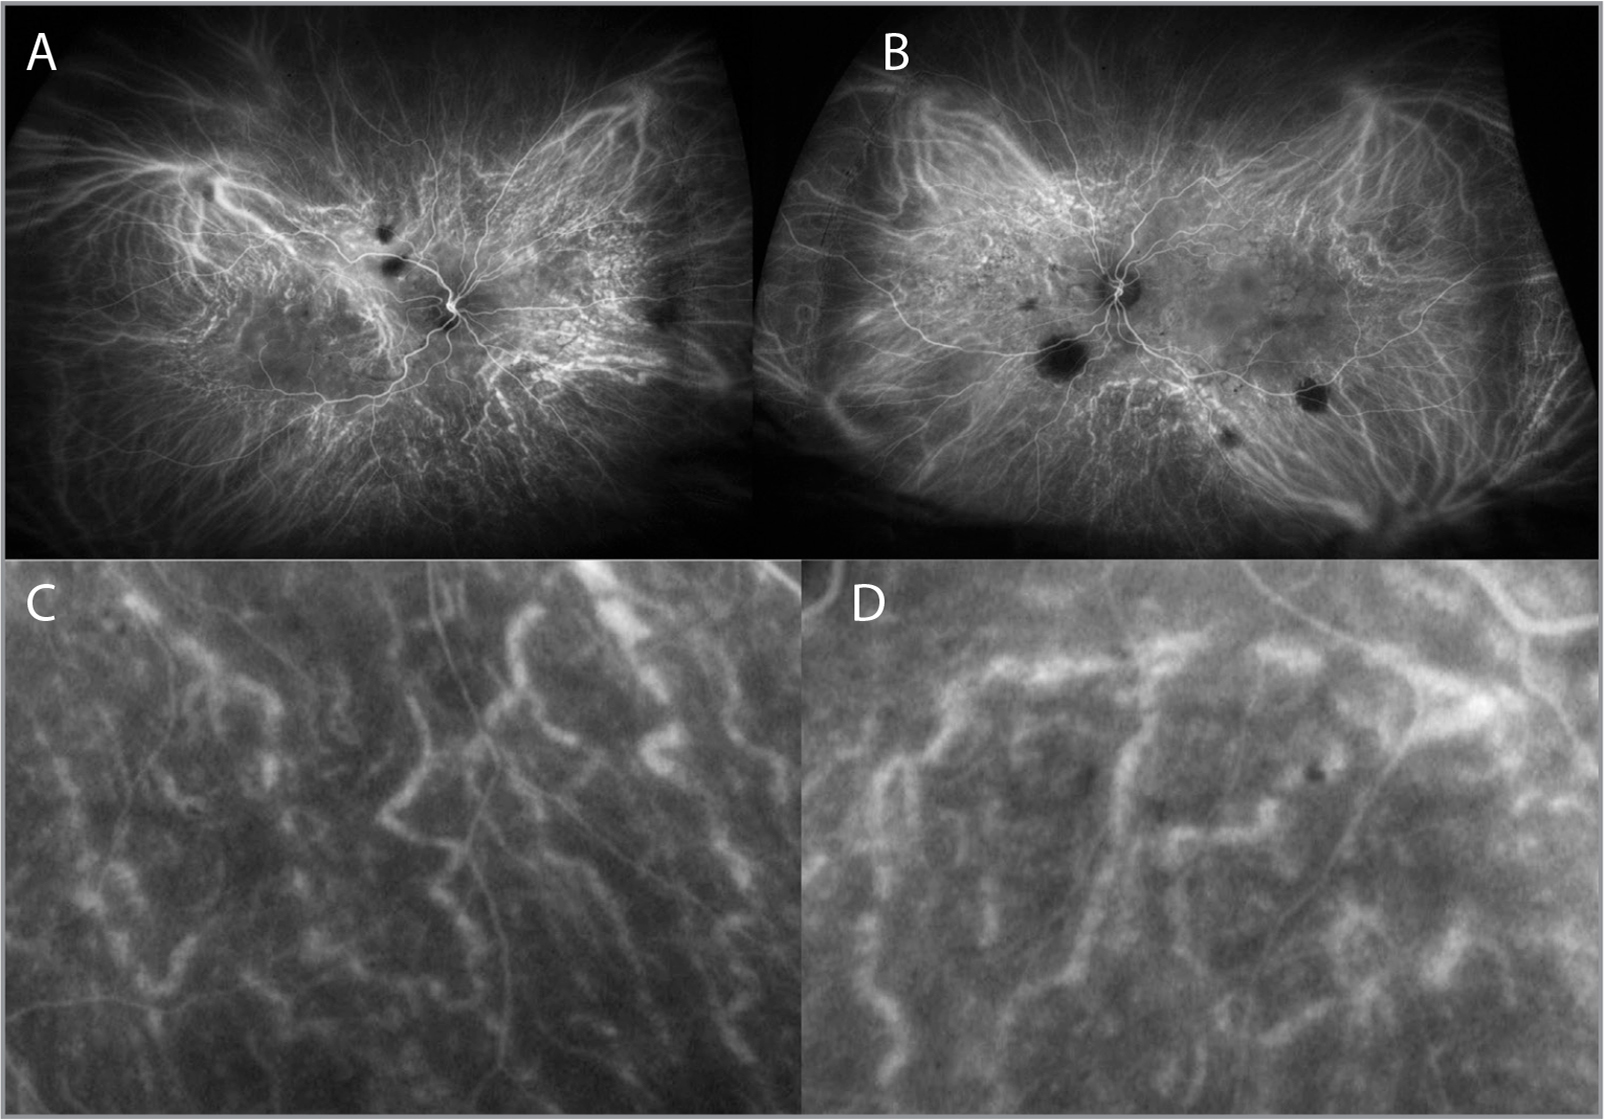 Low- and high-magnification images of indocyanine angiography in the right eye (A, C) and the left eye (B, D).